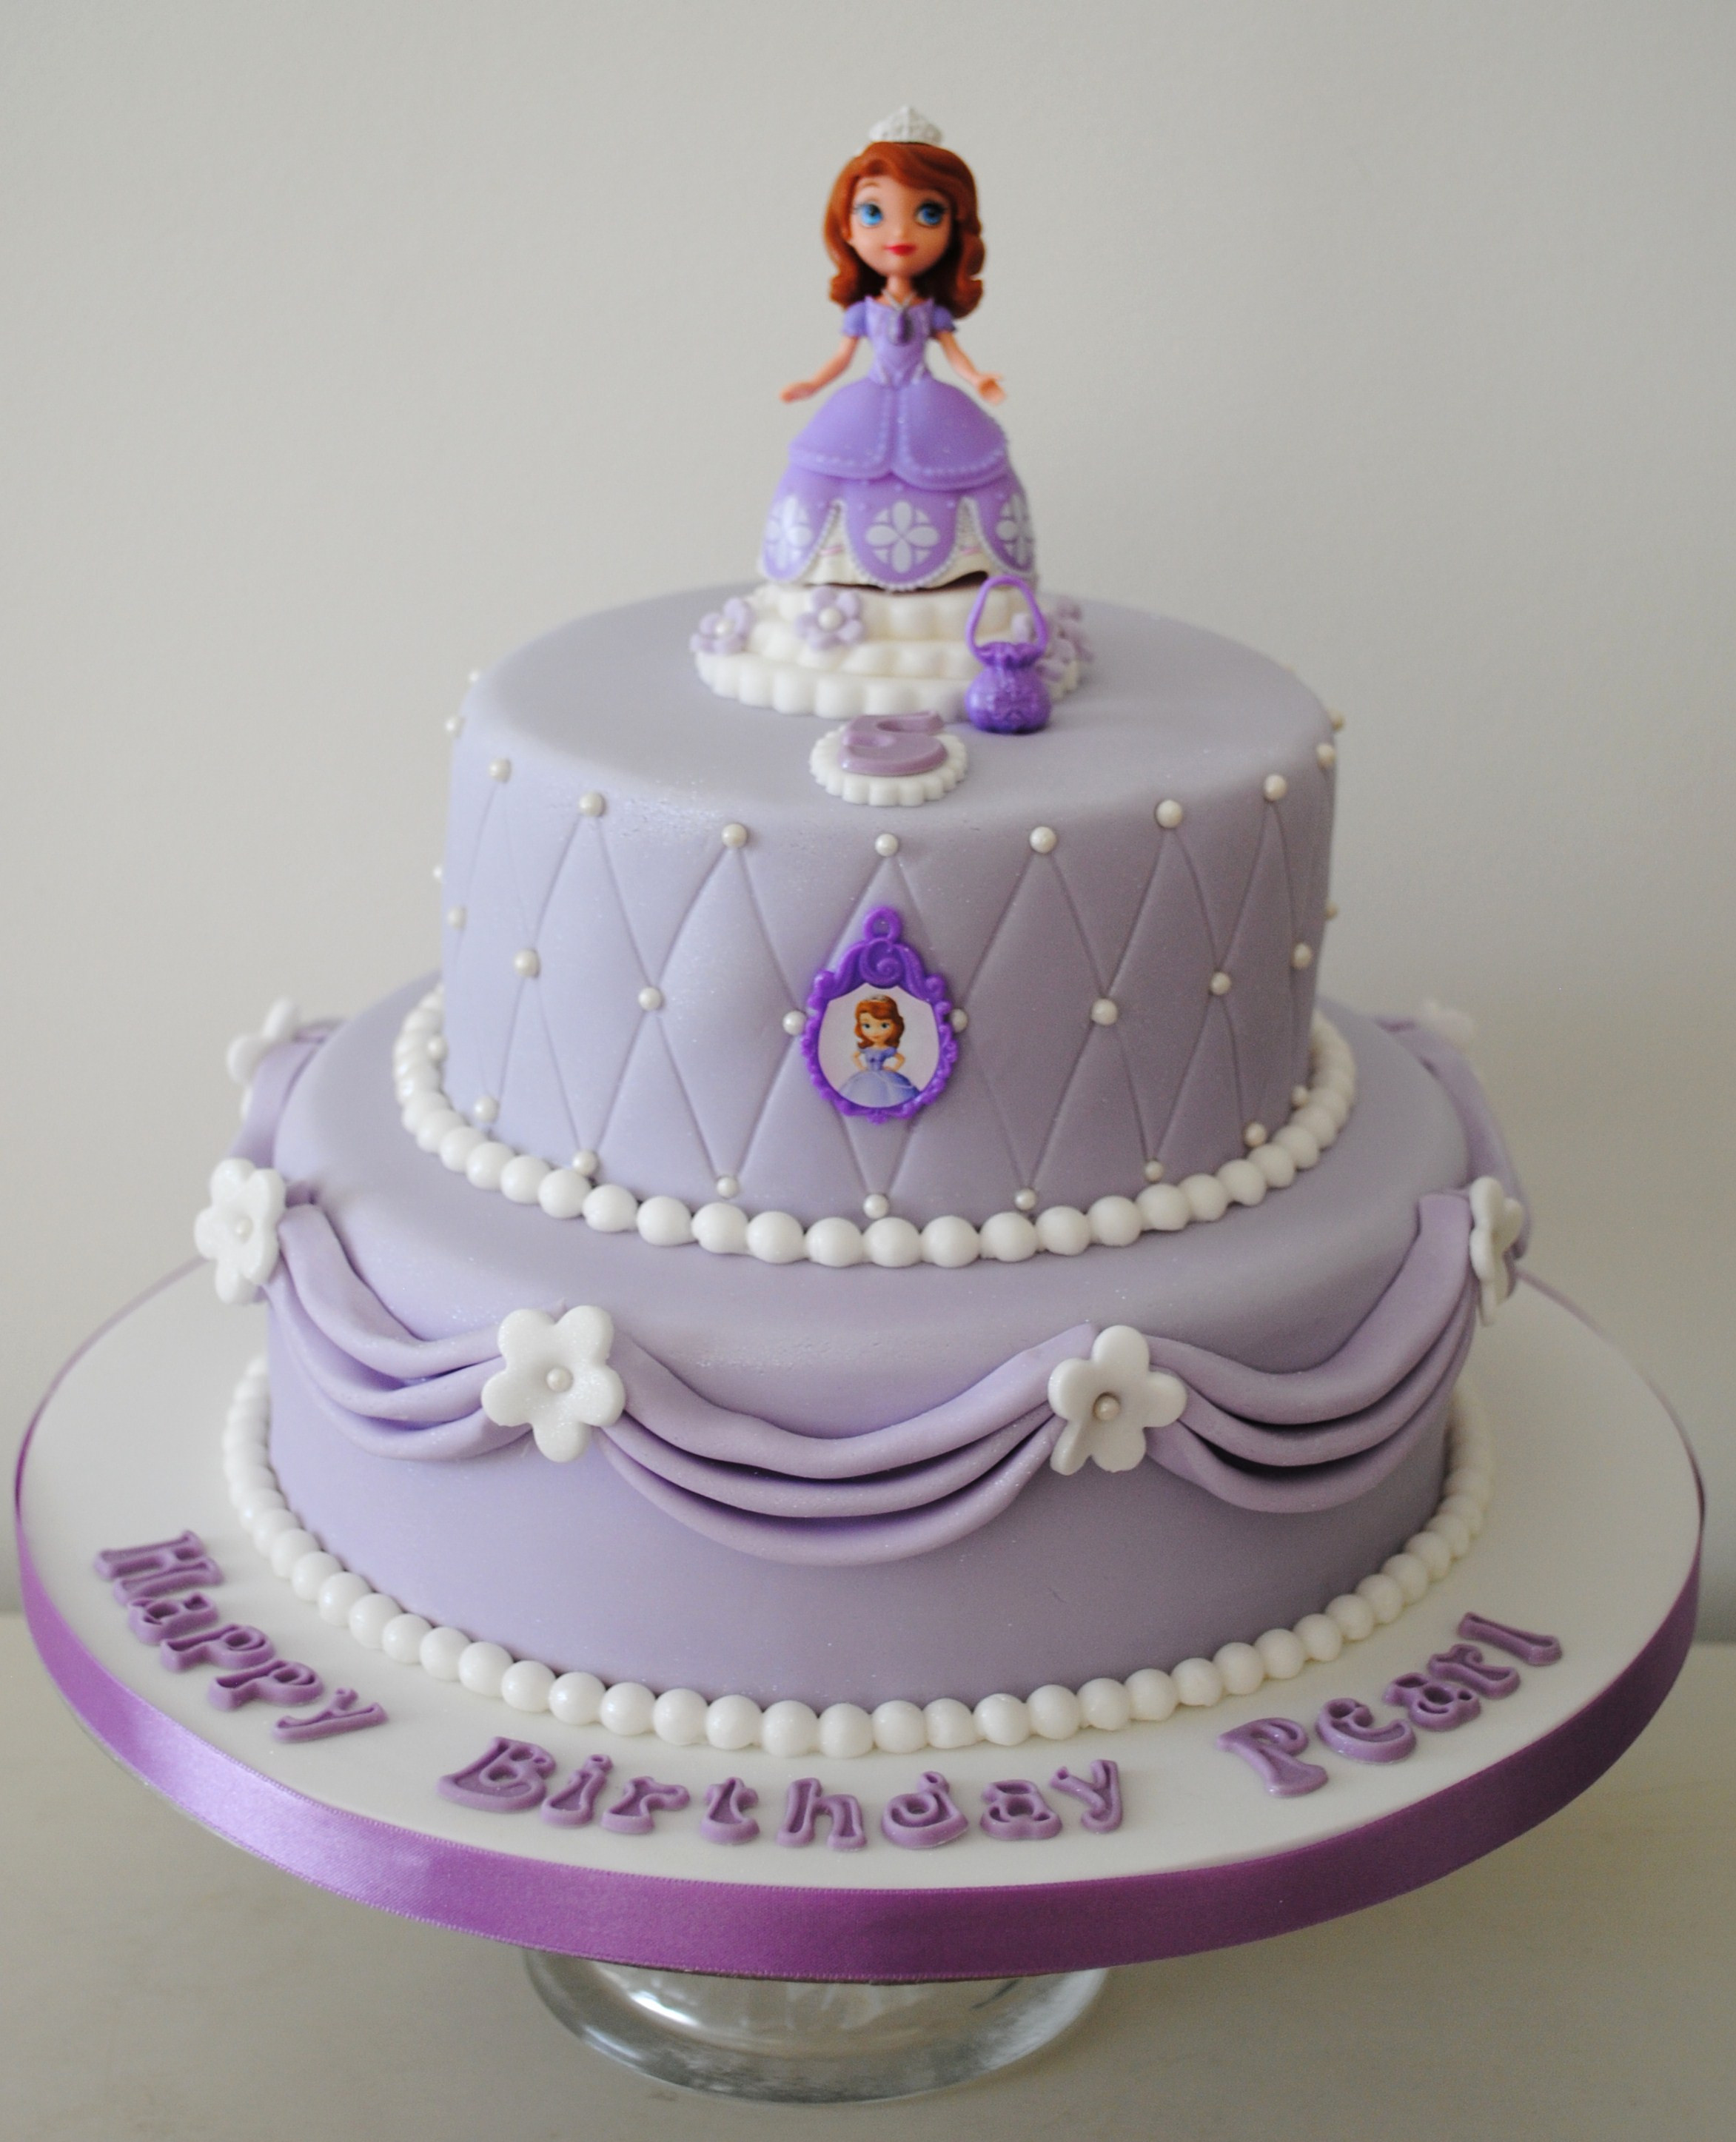 Best ideas about Sofia Birthday Cake . Save or Pin Sofia the first birthday novelty cakes Now.